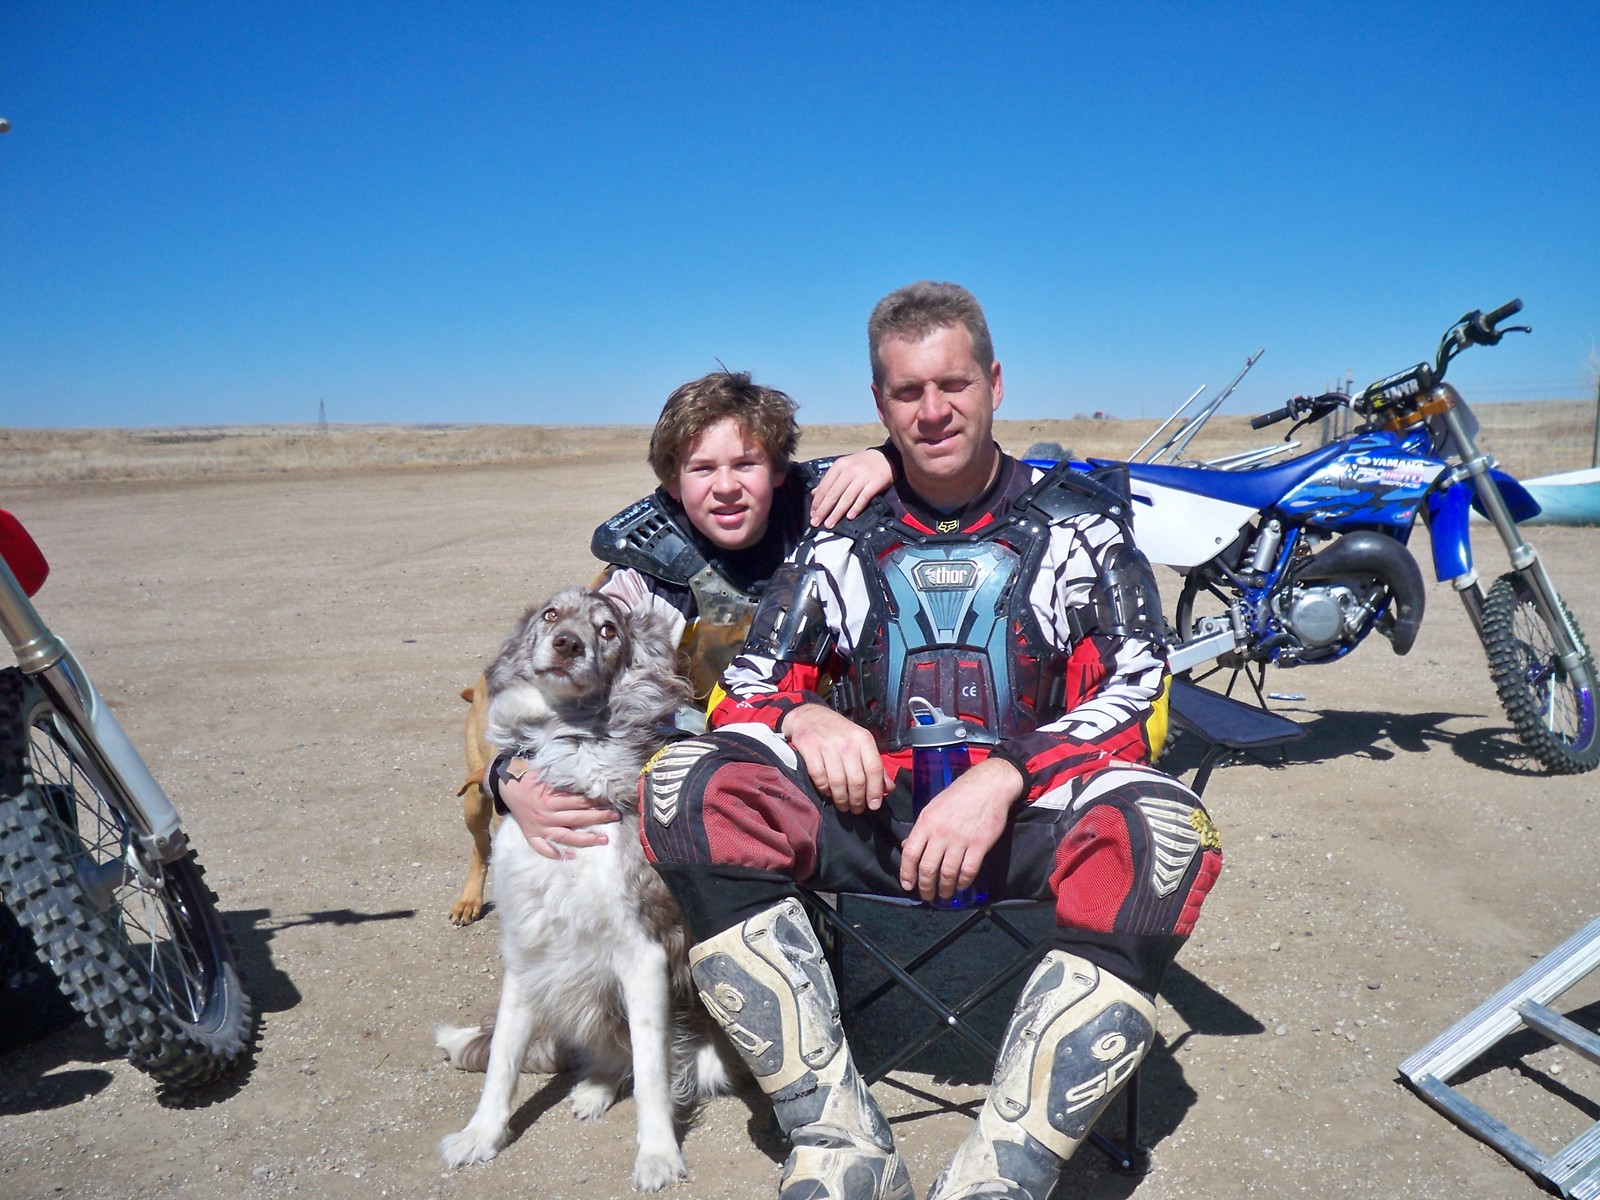 Me and the offspring - jtomasik - Motocross Pictures - Vital MX